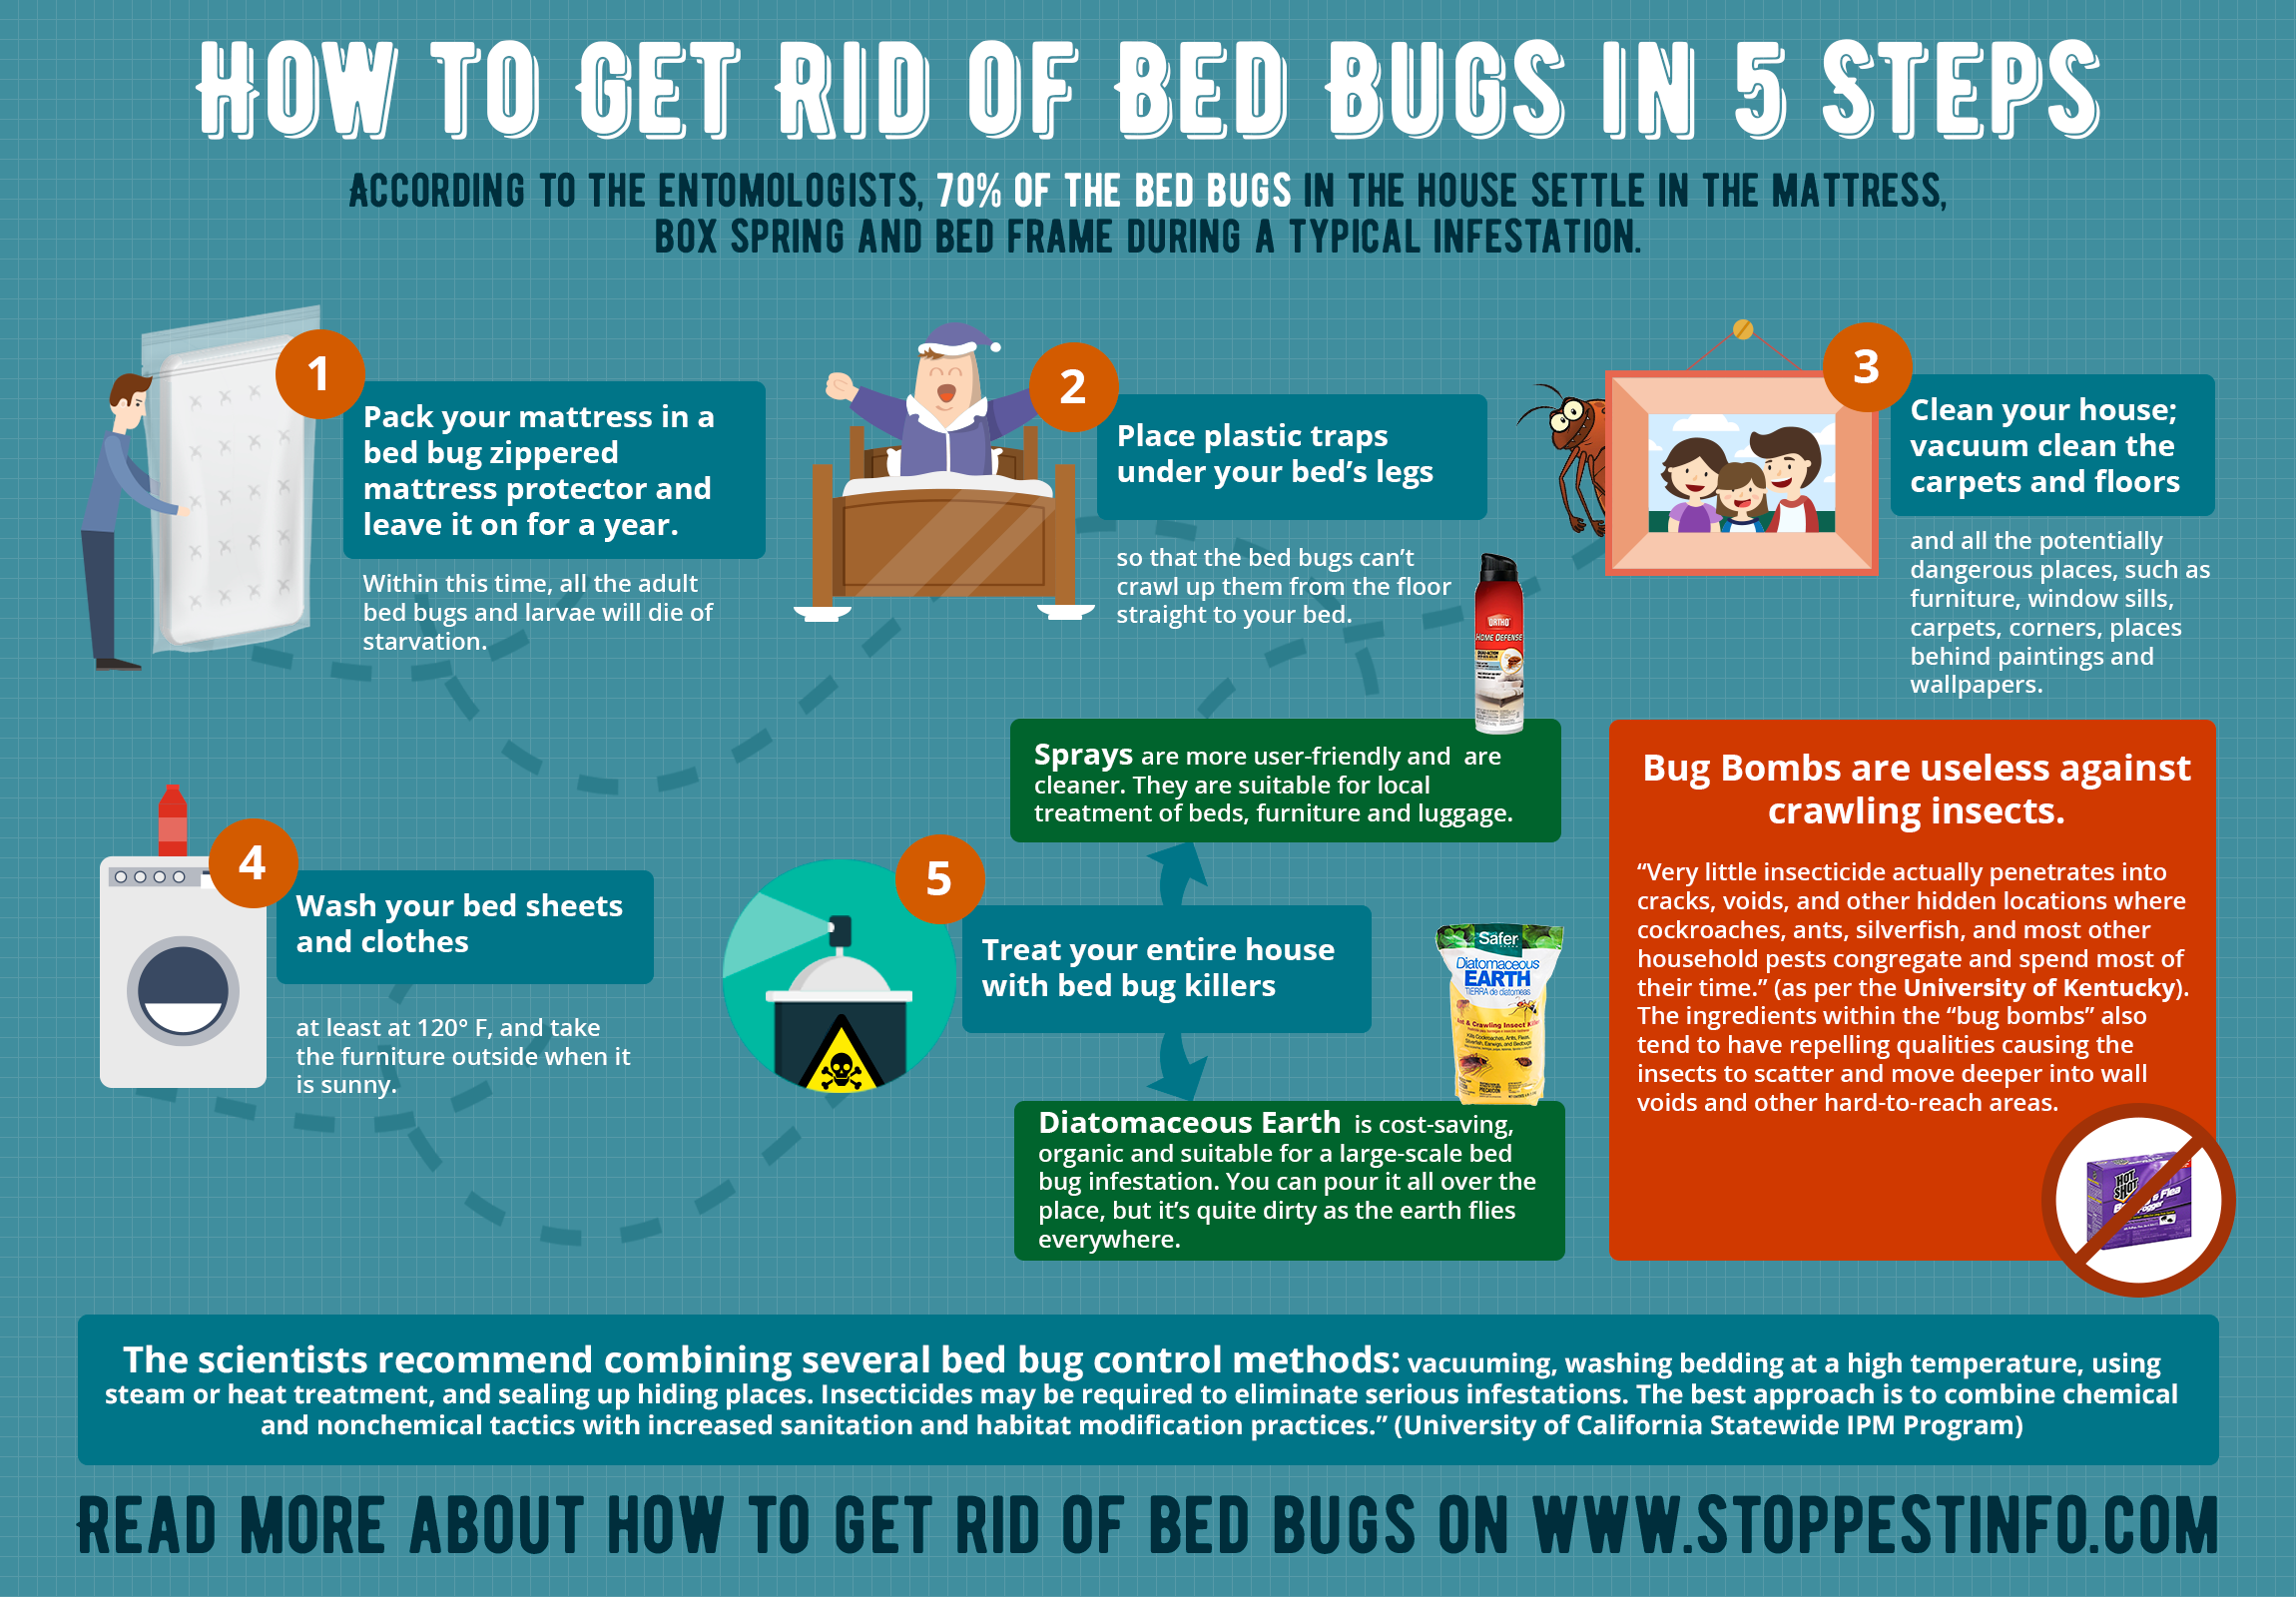 How To Get Rid Of Bed Bugs With Bombs And Foggers Does It Really Work